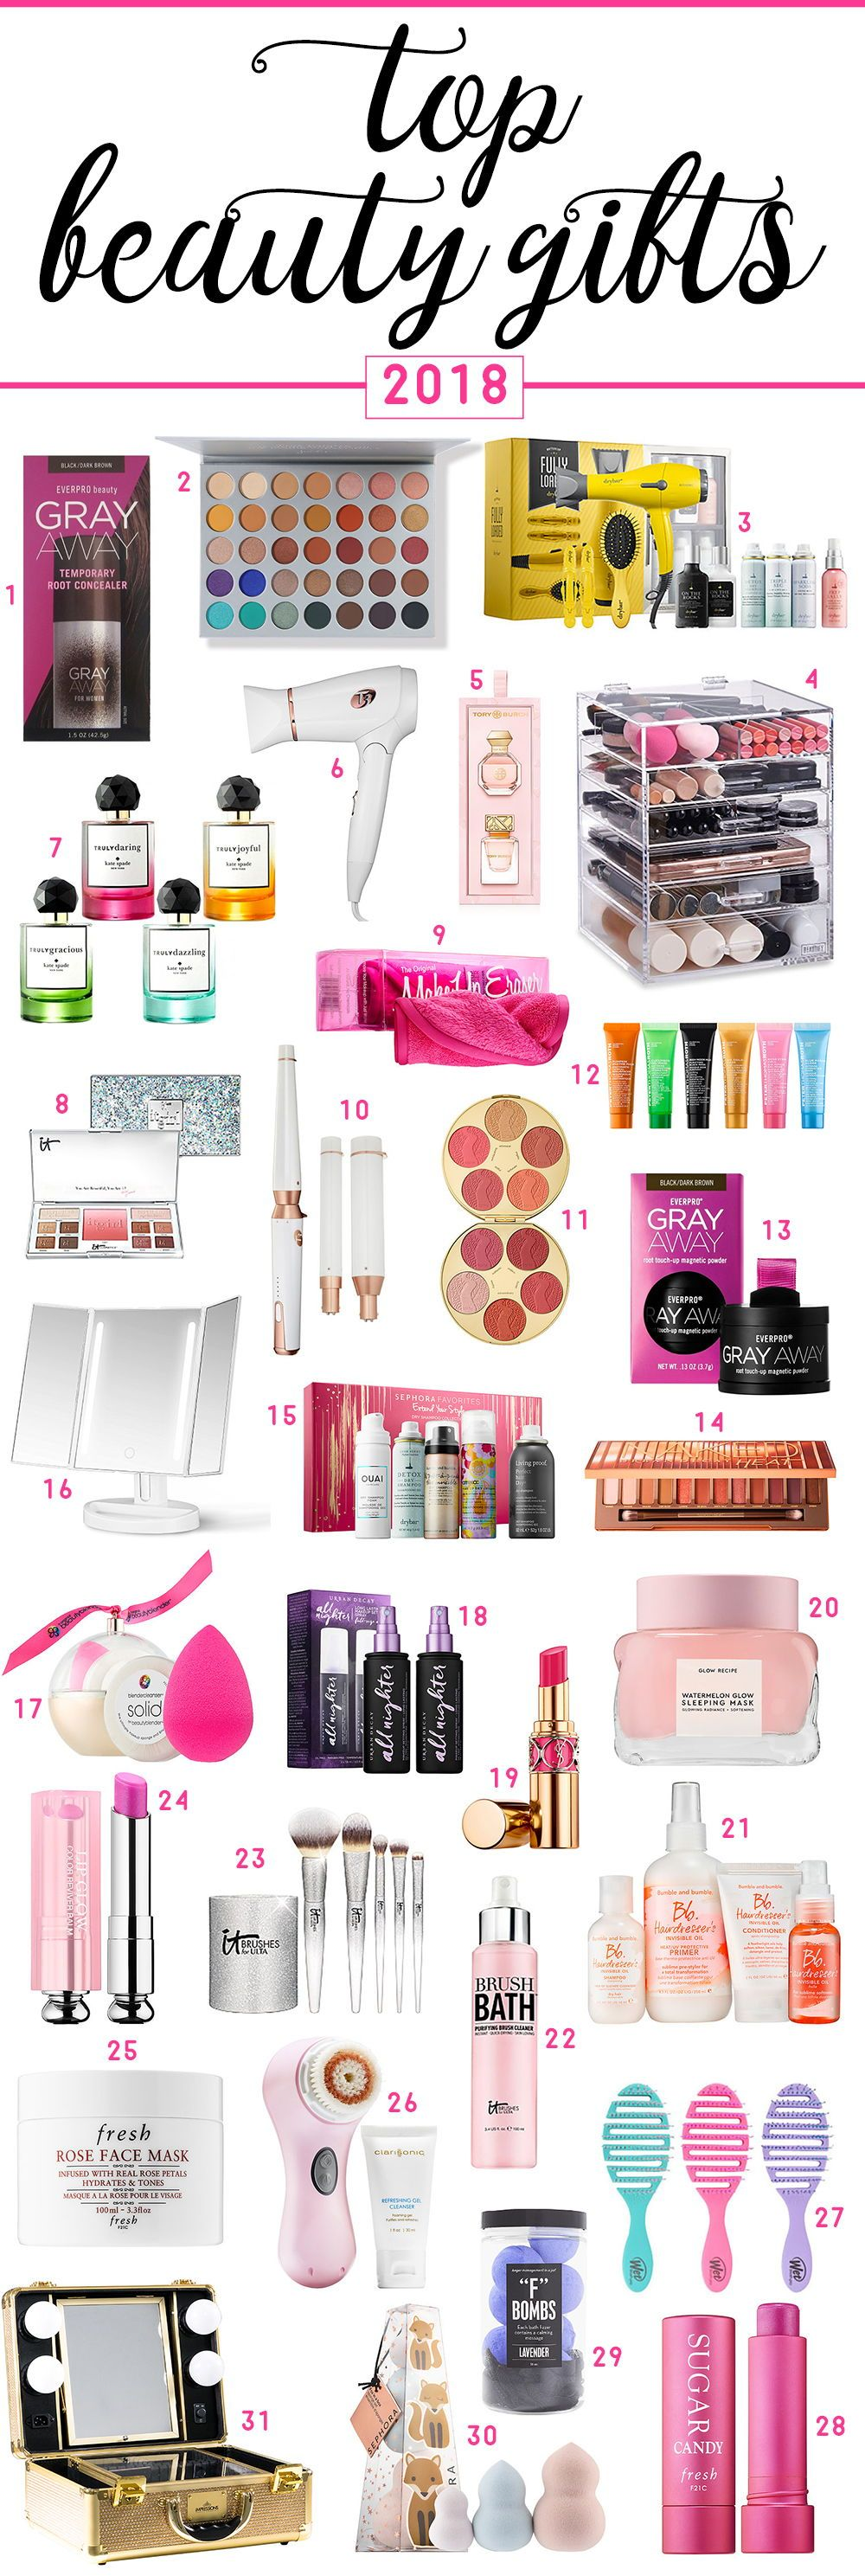 Top Beauty Gifts 2018: 30+ Gift Ideas for the Makeup Junkie